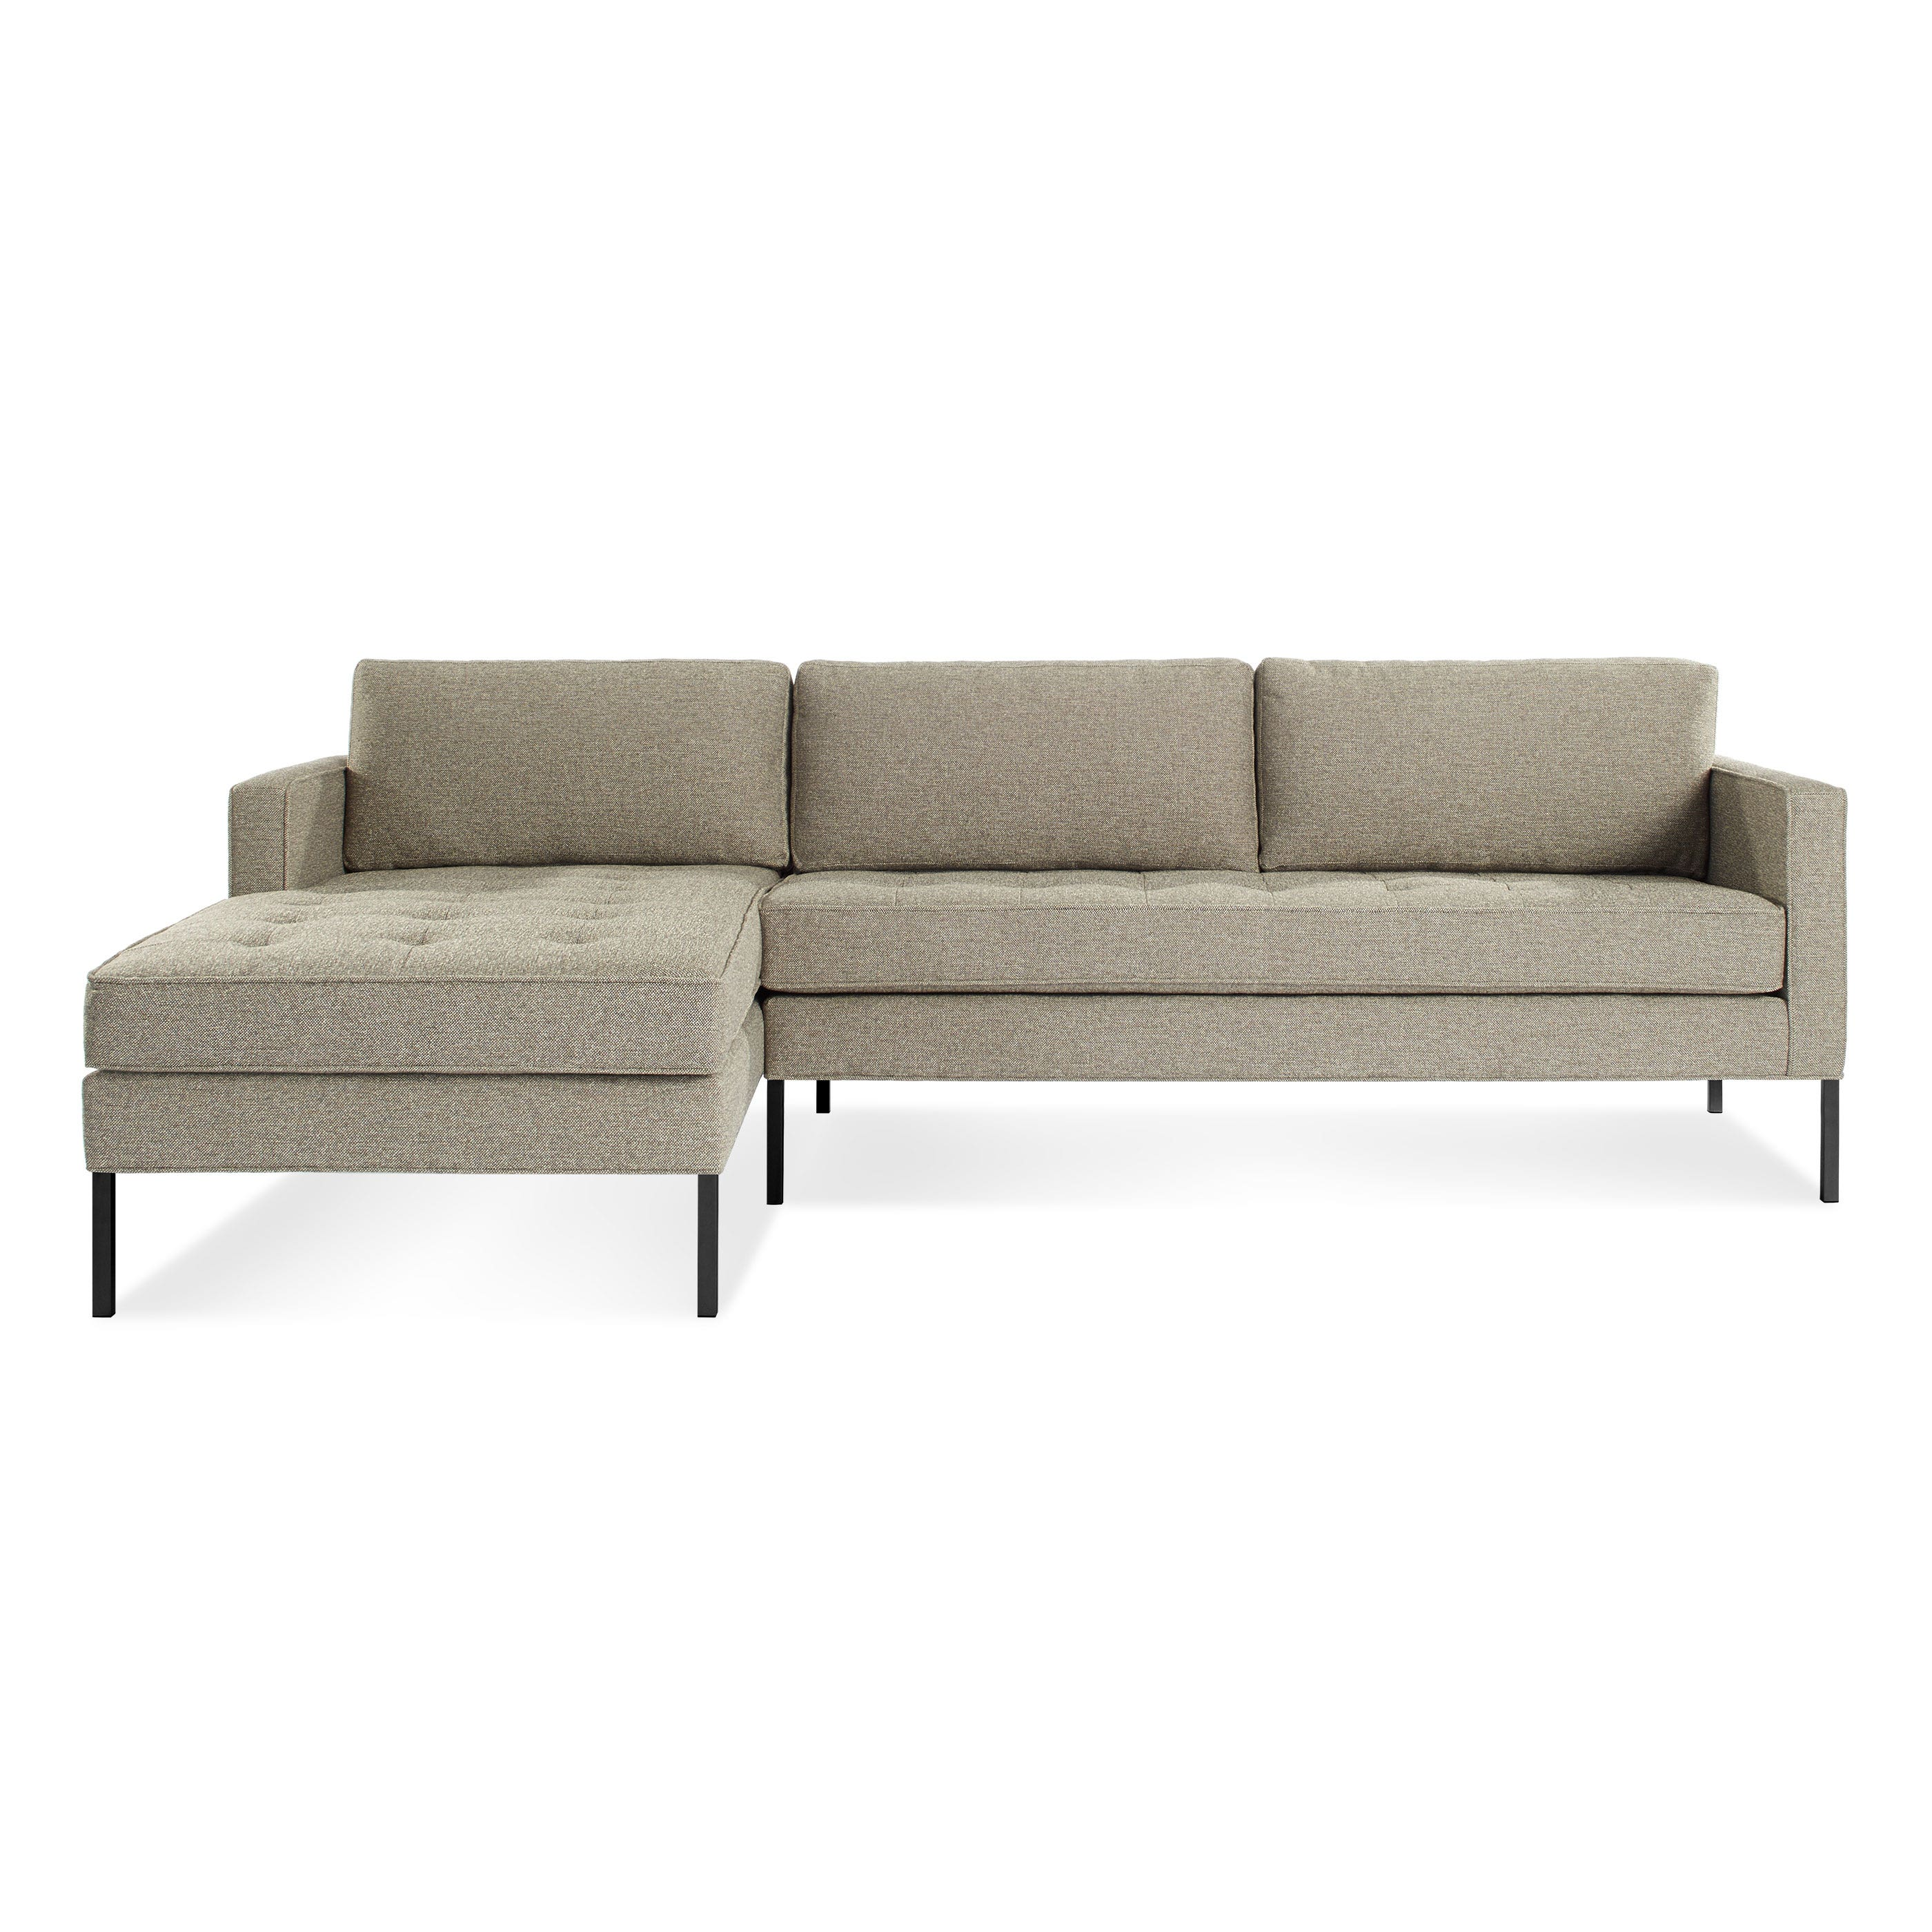 is sectional a sofa chaise sofas why couches modern sale couch sign black of elegance gray bed